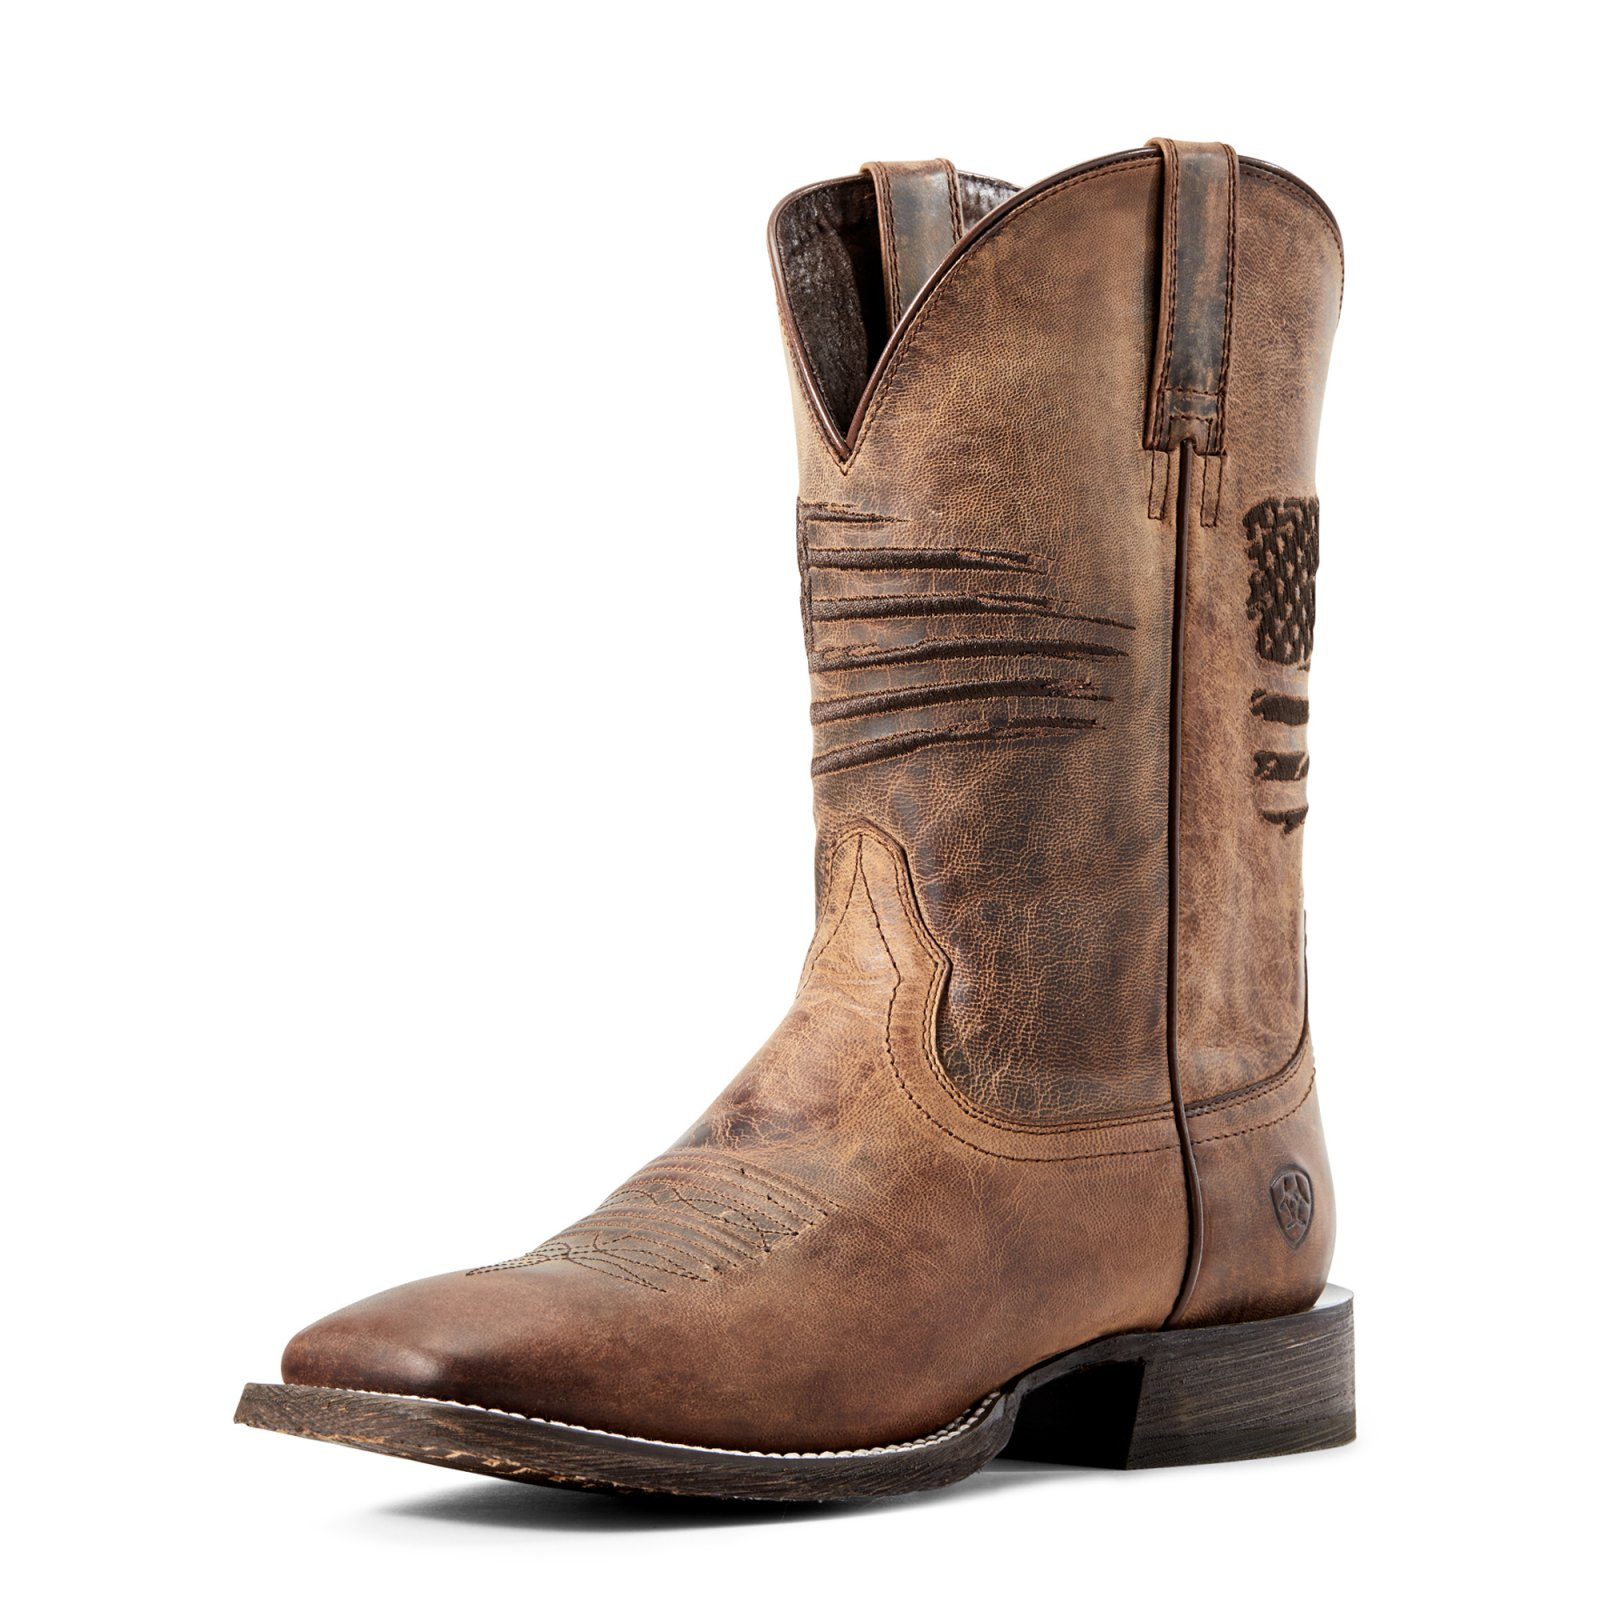 Circuit Patriot Boot from Ariat